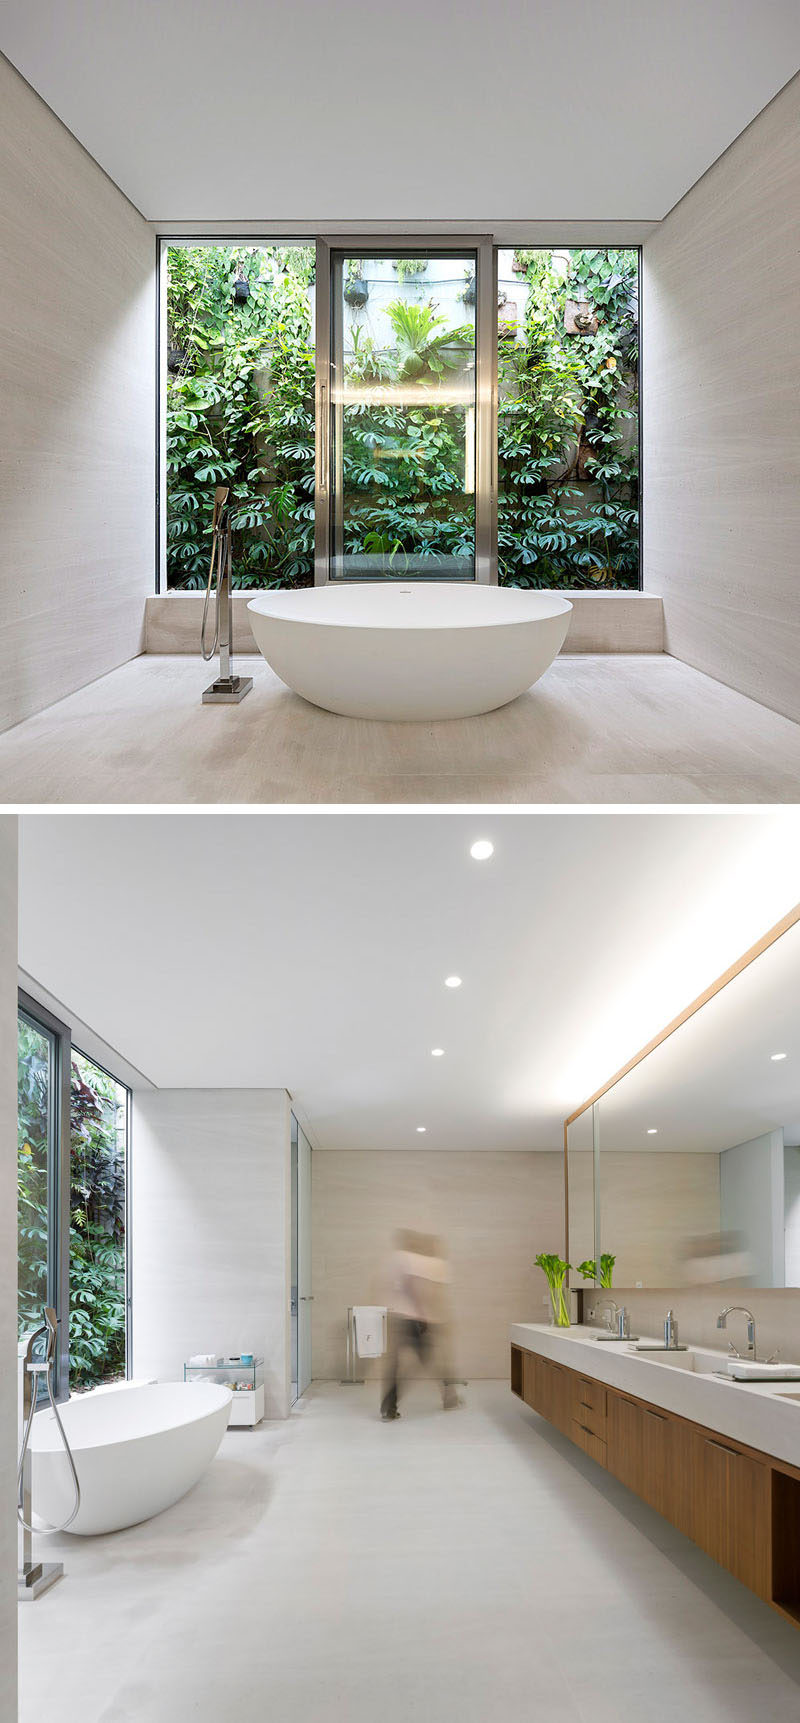 This master bathroom has the bathtub positioned to take advantage of the views of the relaxing garden environment outside.